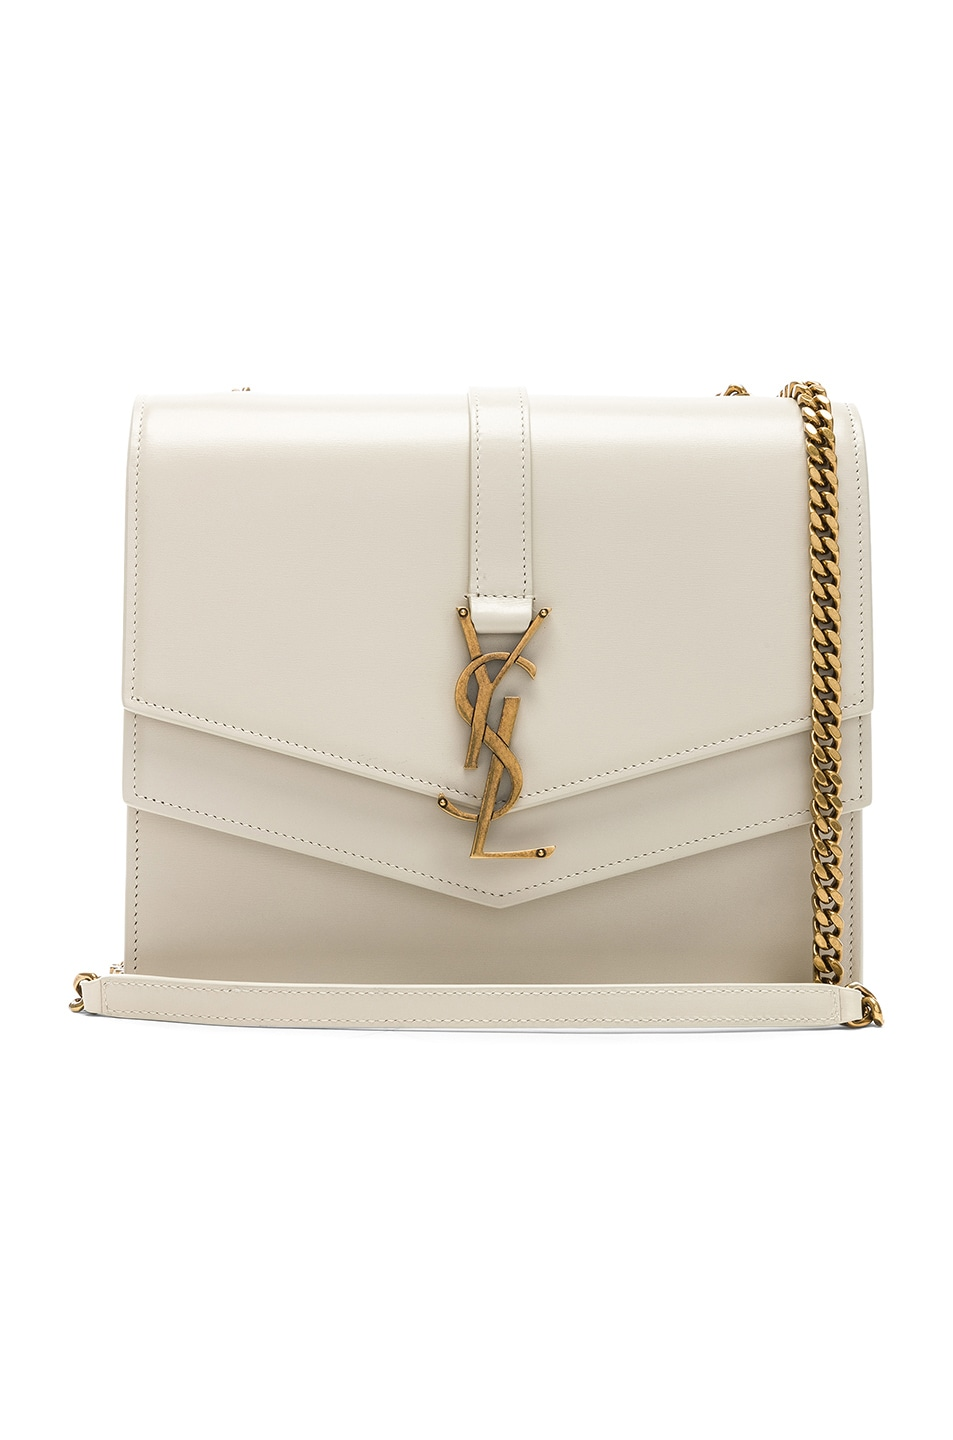 Image 1 of Saint Laurent Medium Monogramme Bag in Blanc Vintage